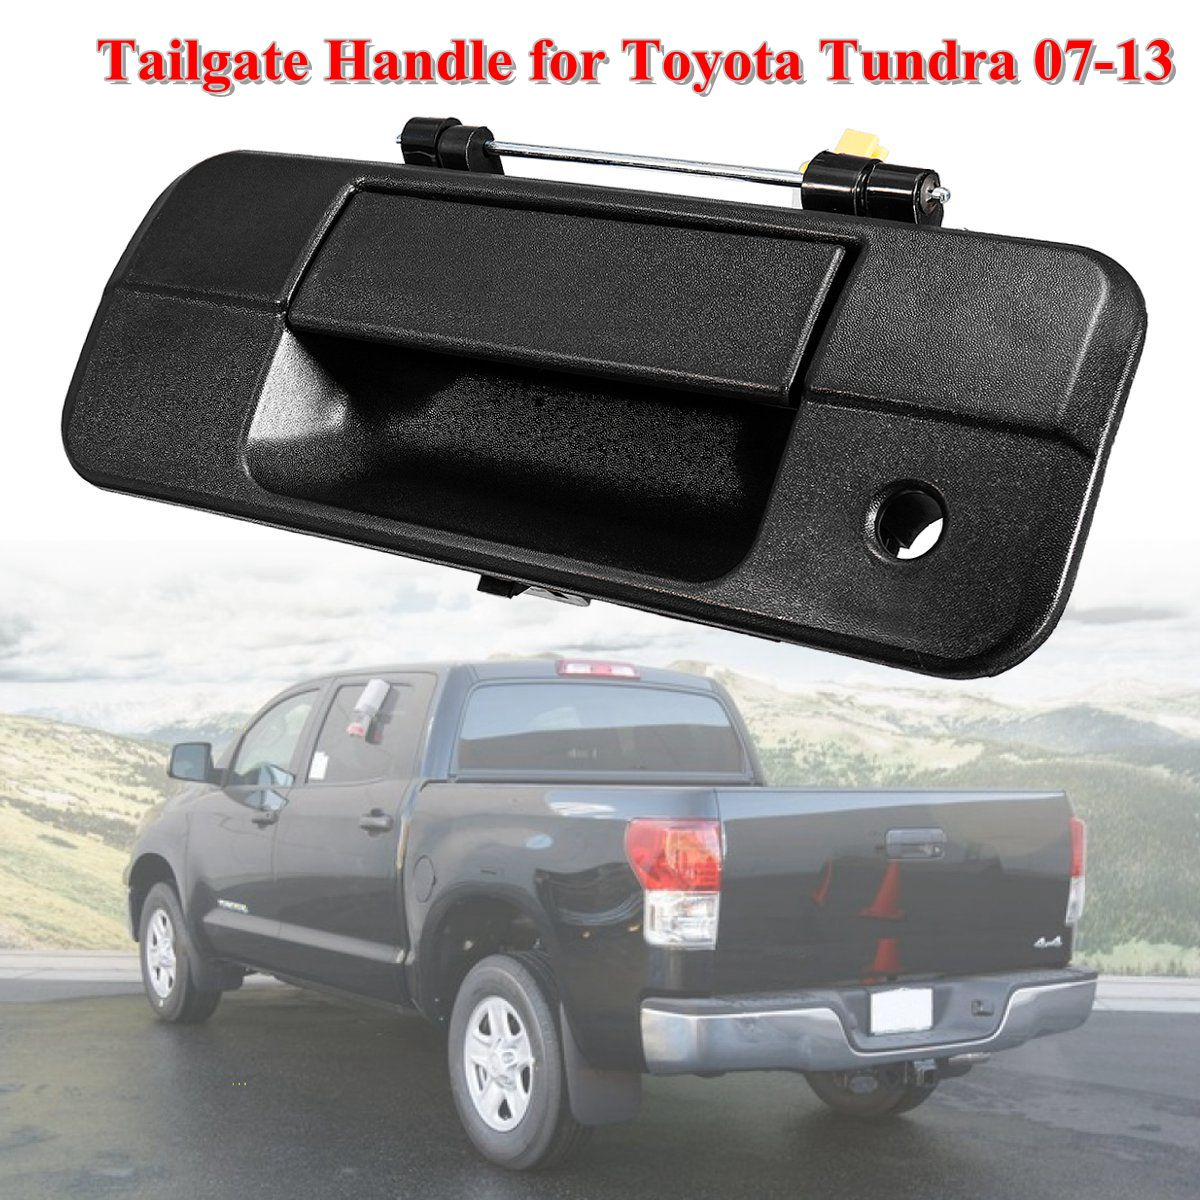 Tailgate Liftgate Handle Textured Black Finish for 07-13 Toyota Tundra